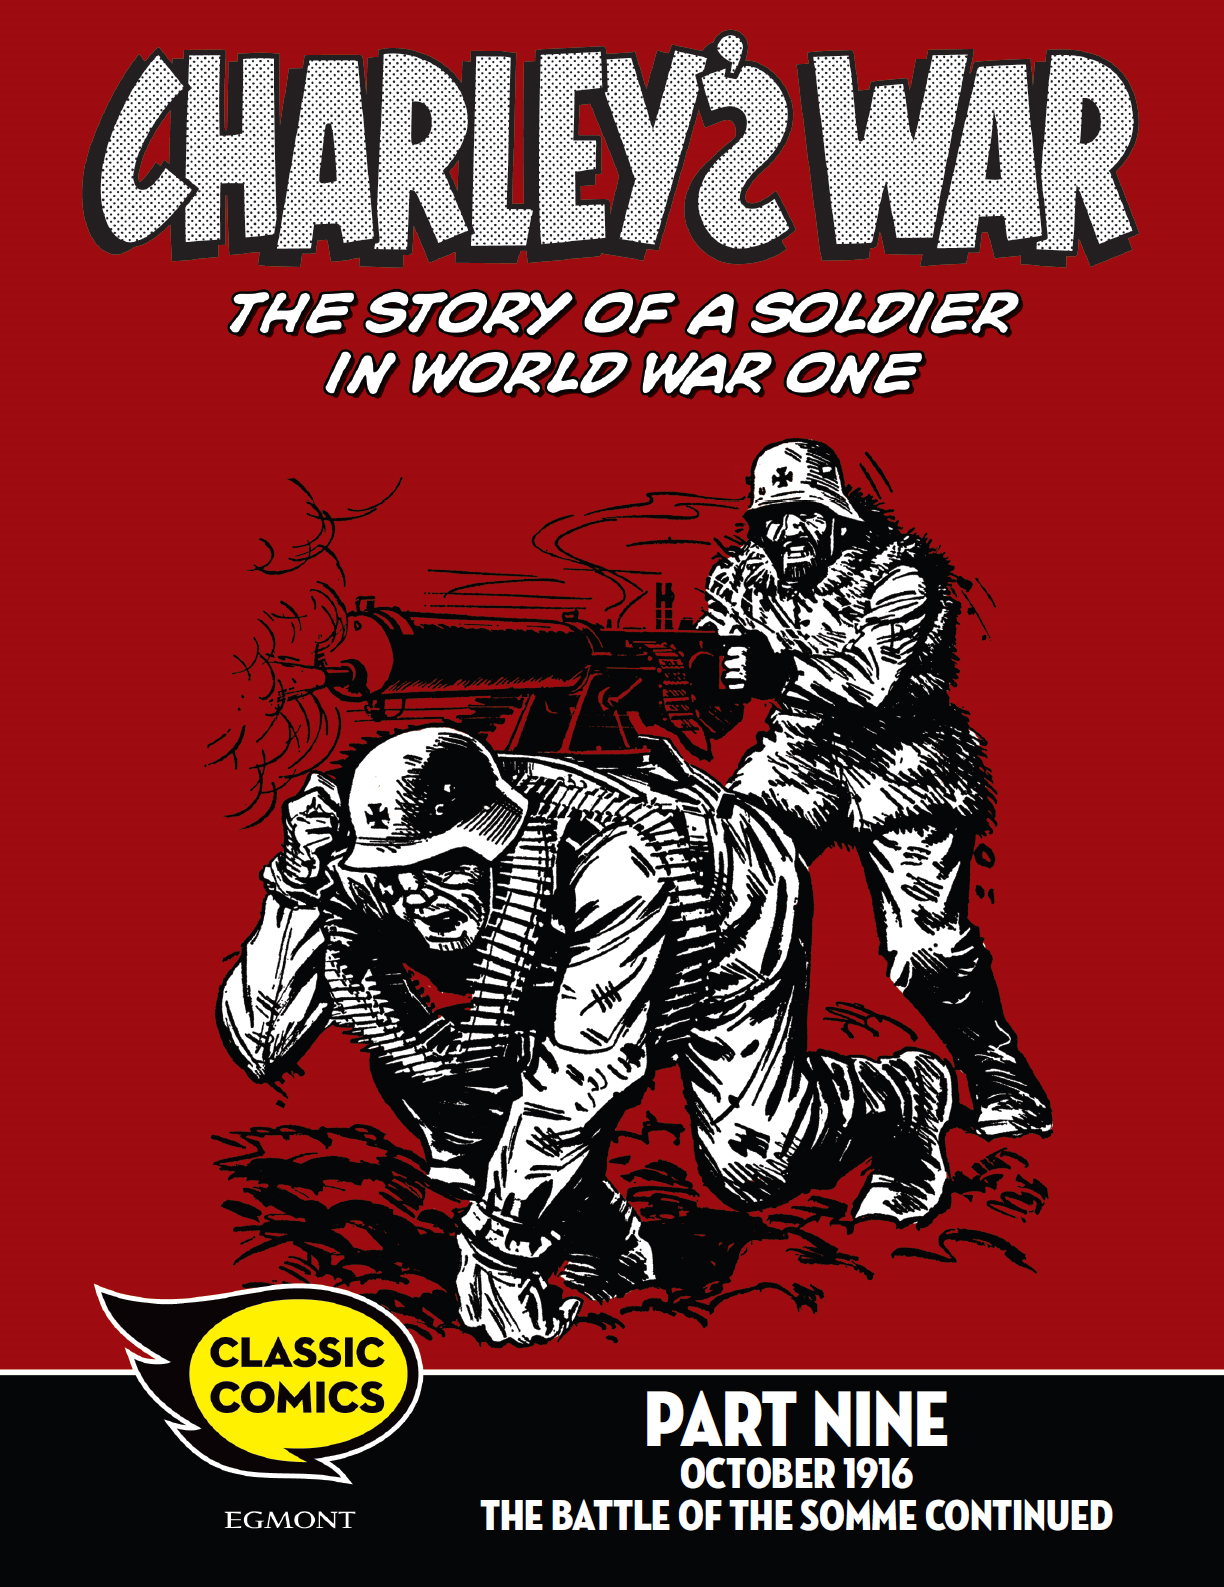 Charley's War Comic Part Nine: October 1916 The Battle of the Somme continued